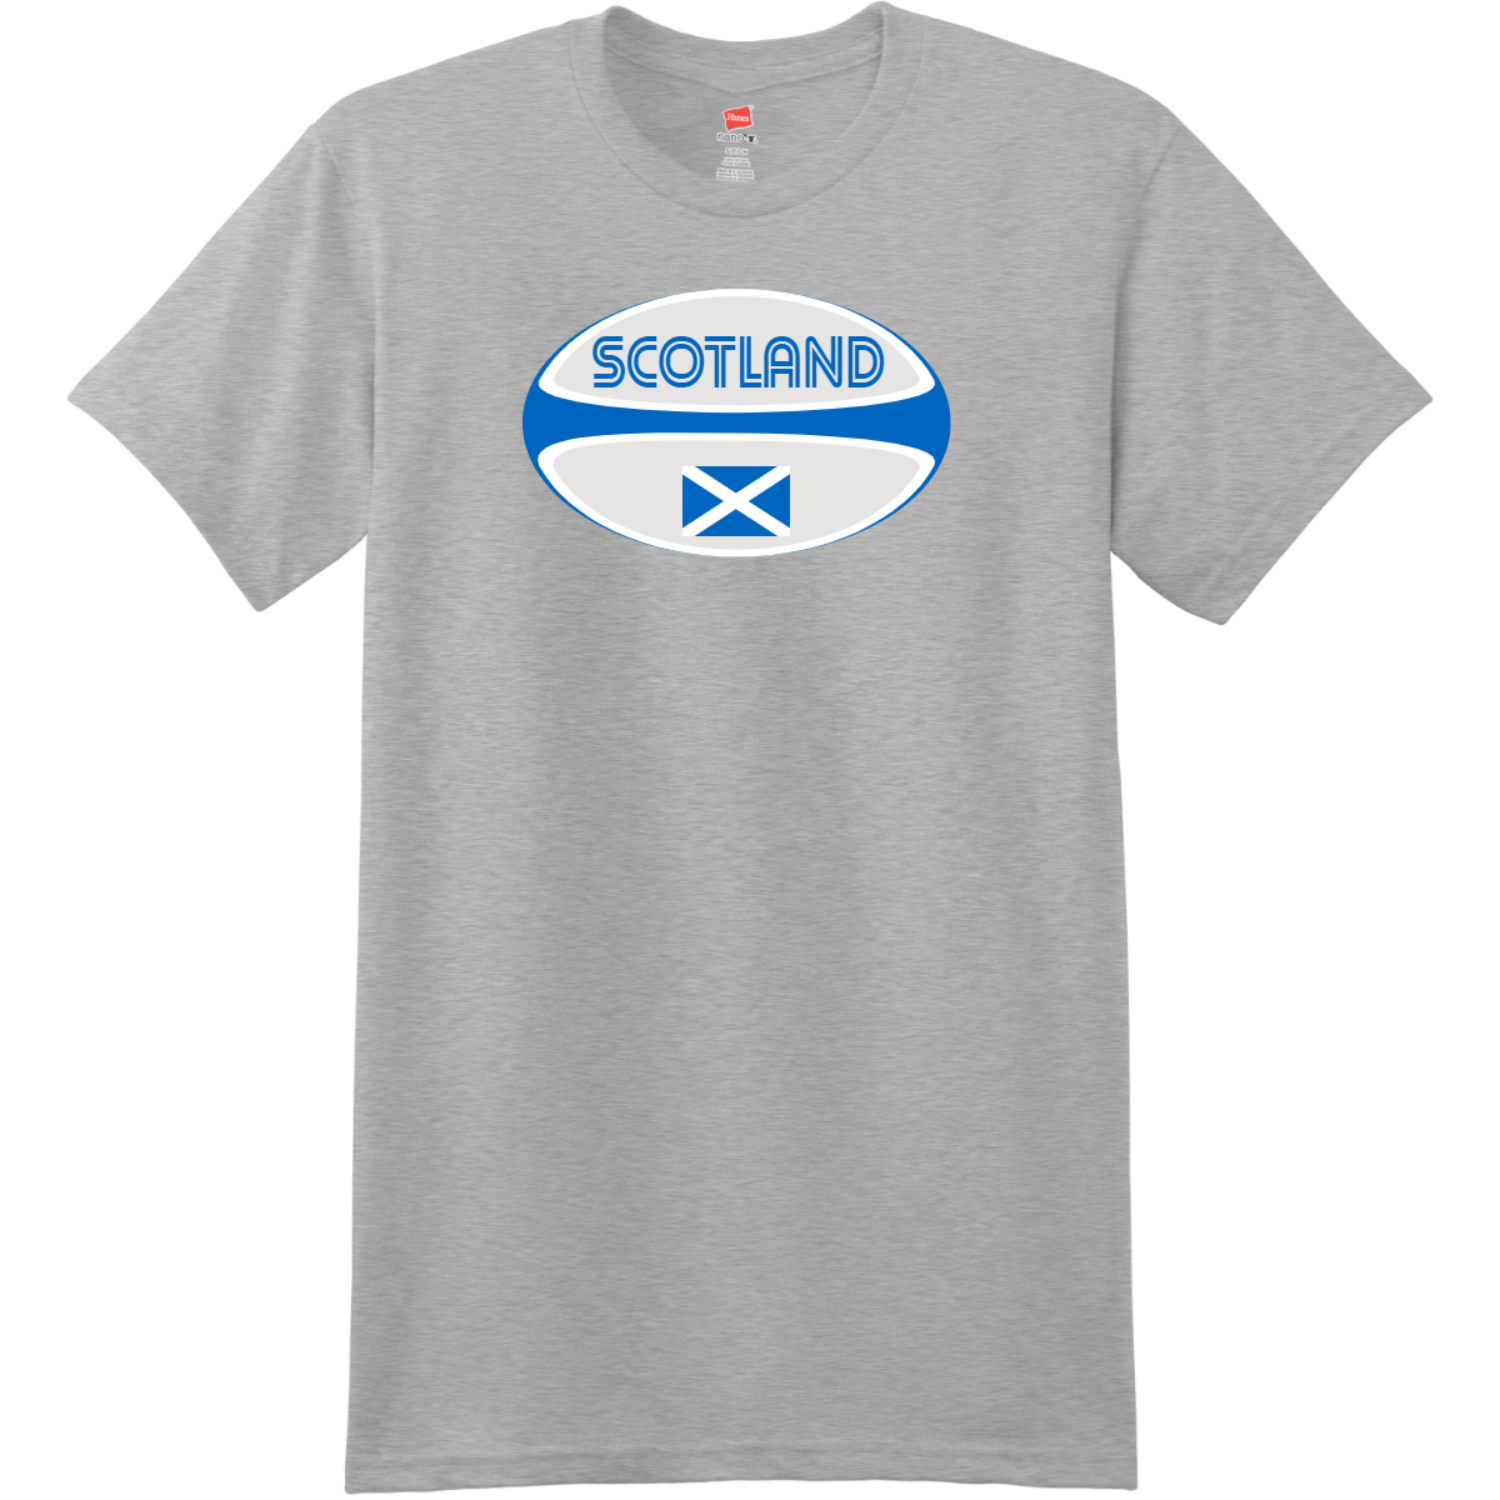 Scotland Rugby Ball T-Shirt Light Steel Hanes Nano 4980 Ringspun Cotton T Shirt